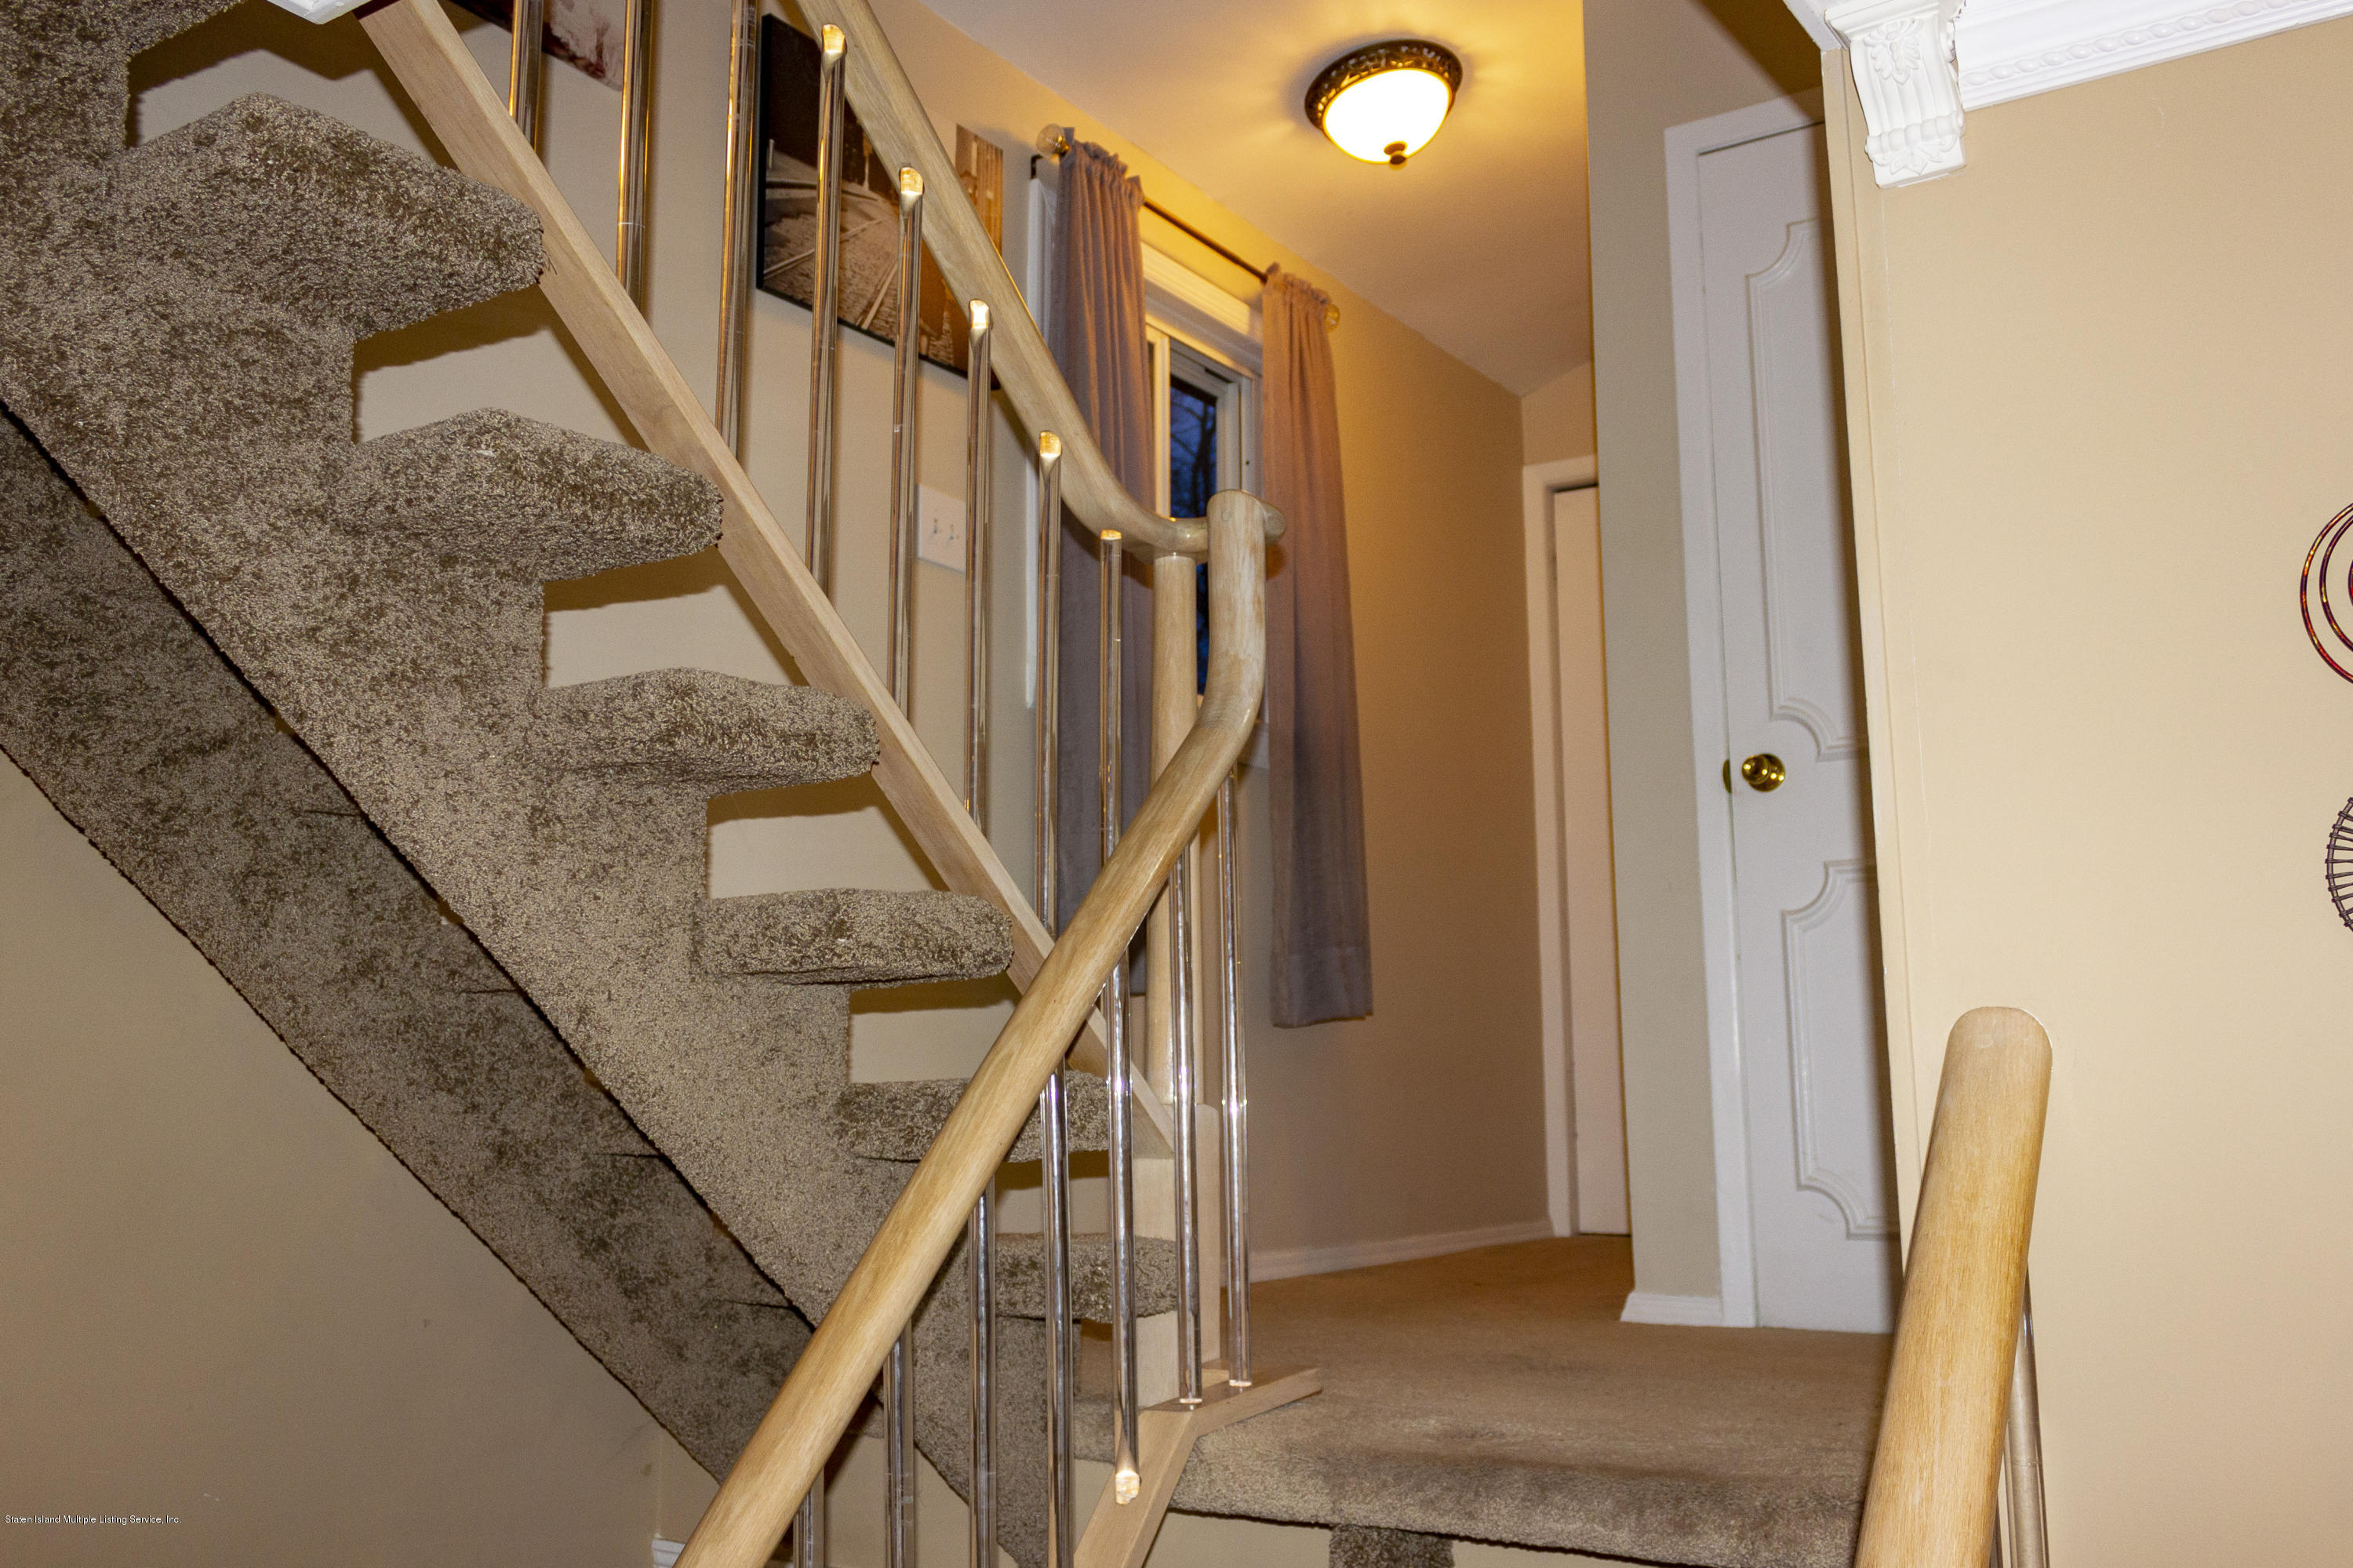 Single Family - Semi-Attached 59 Goller Place  Staten Island, NY 10314, MLS-1127931-15